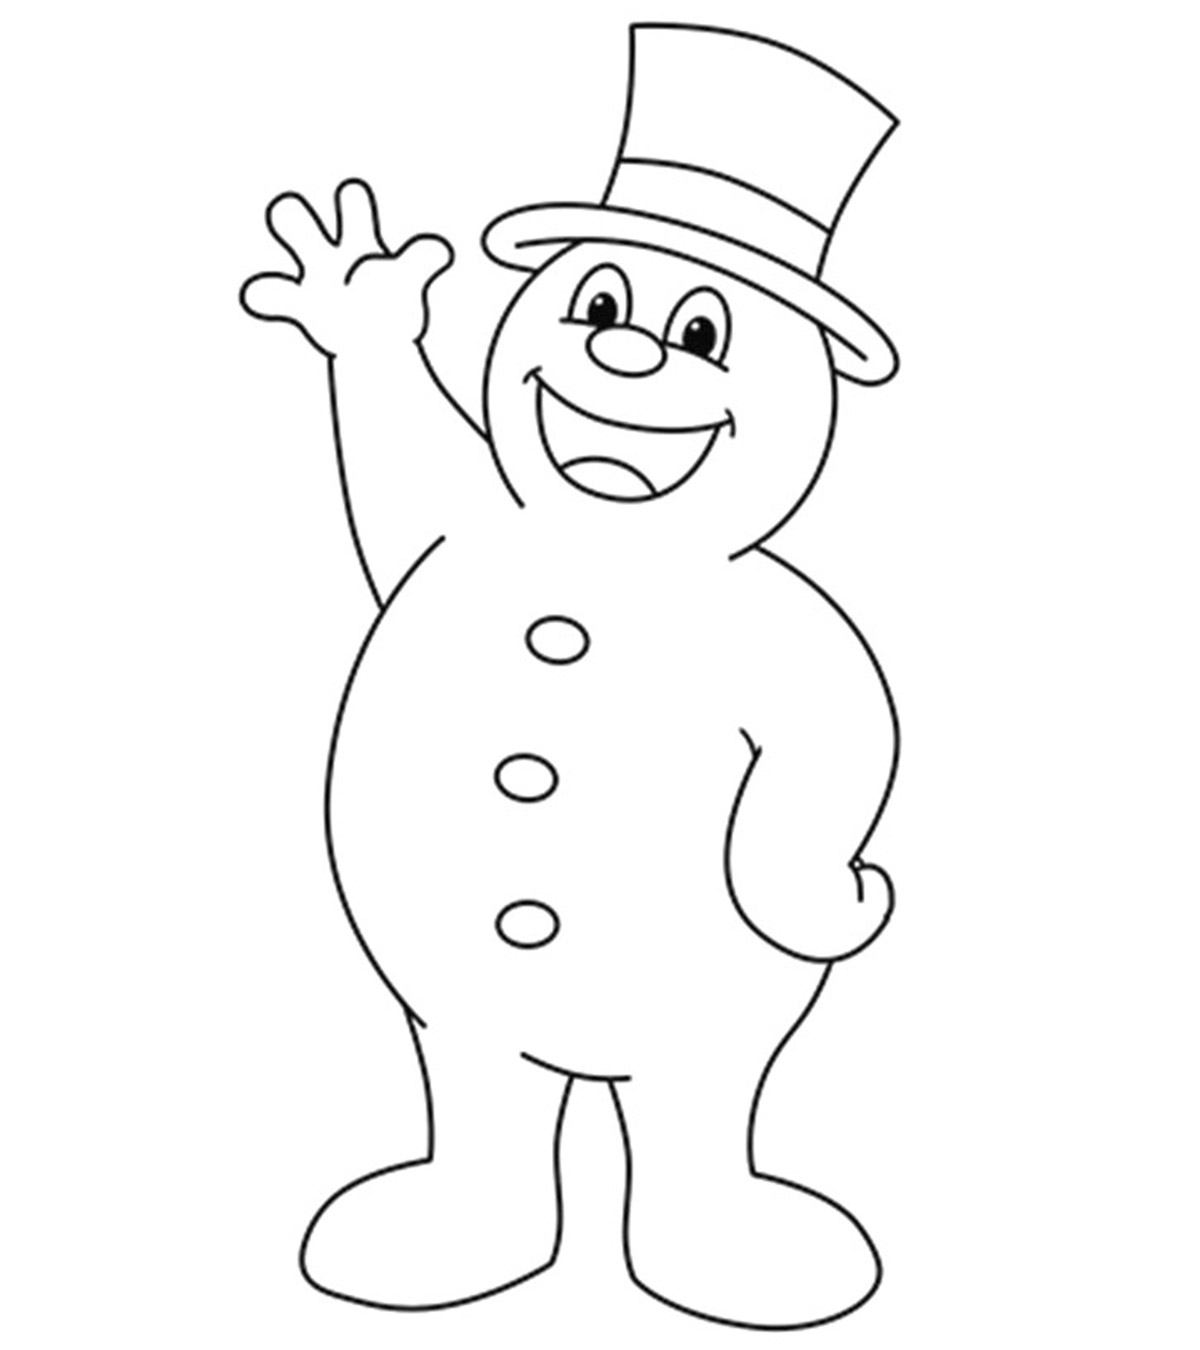 10 Cute Frosty The Snowman Coloring Pages For Toddlers